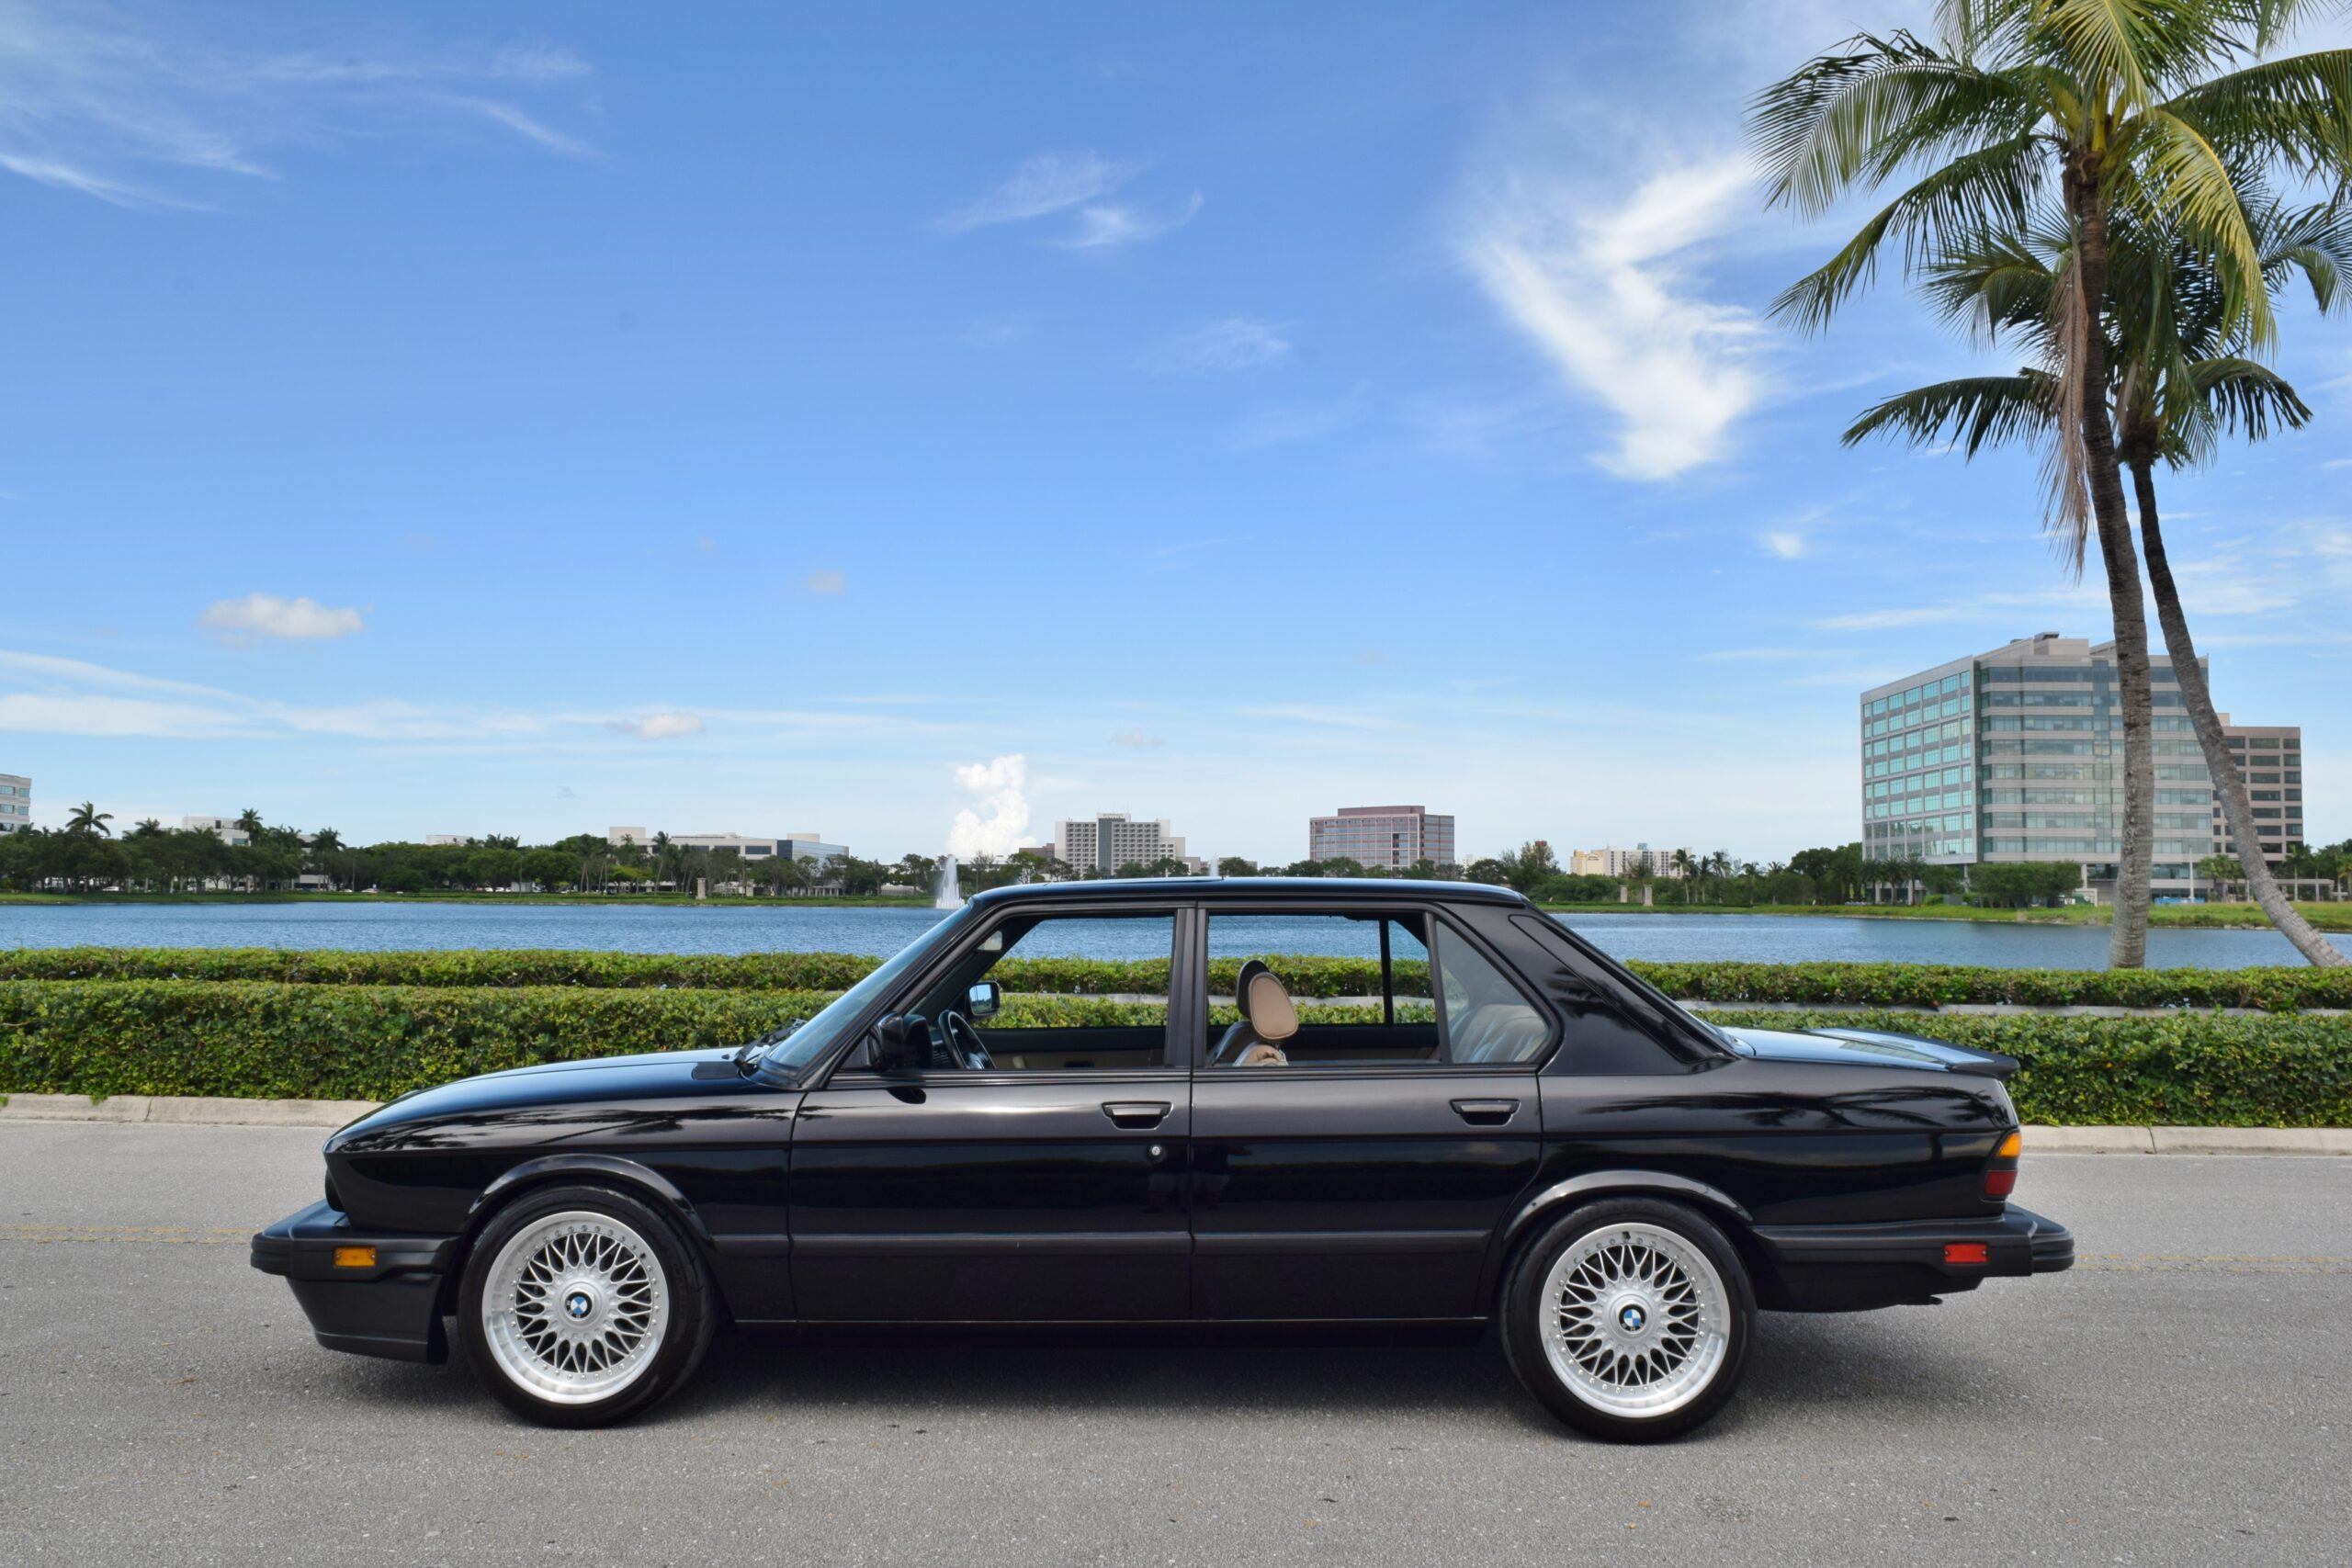 1988 BMW M5 E28 Well Sorted-California Car-Brembo Big Brakes -Full Service History- No Accidents